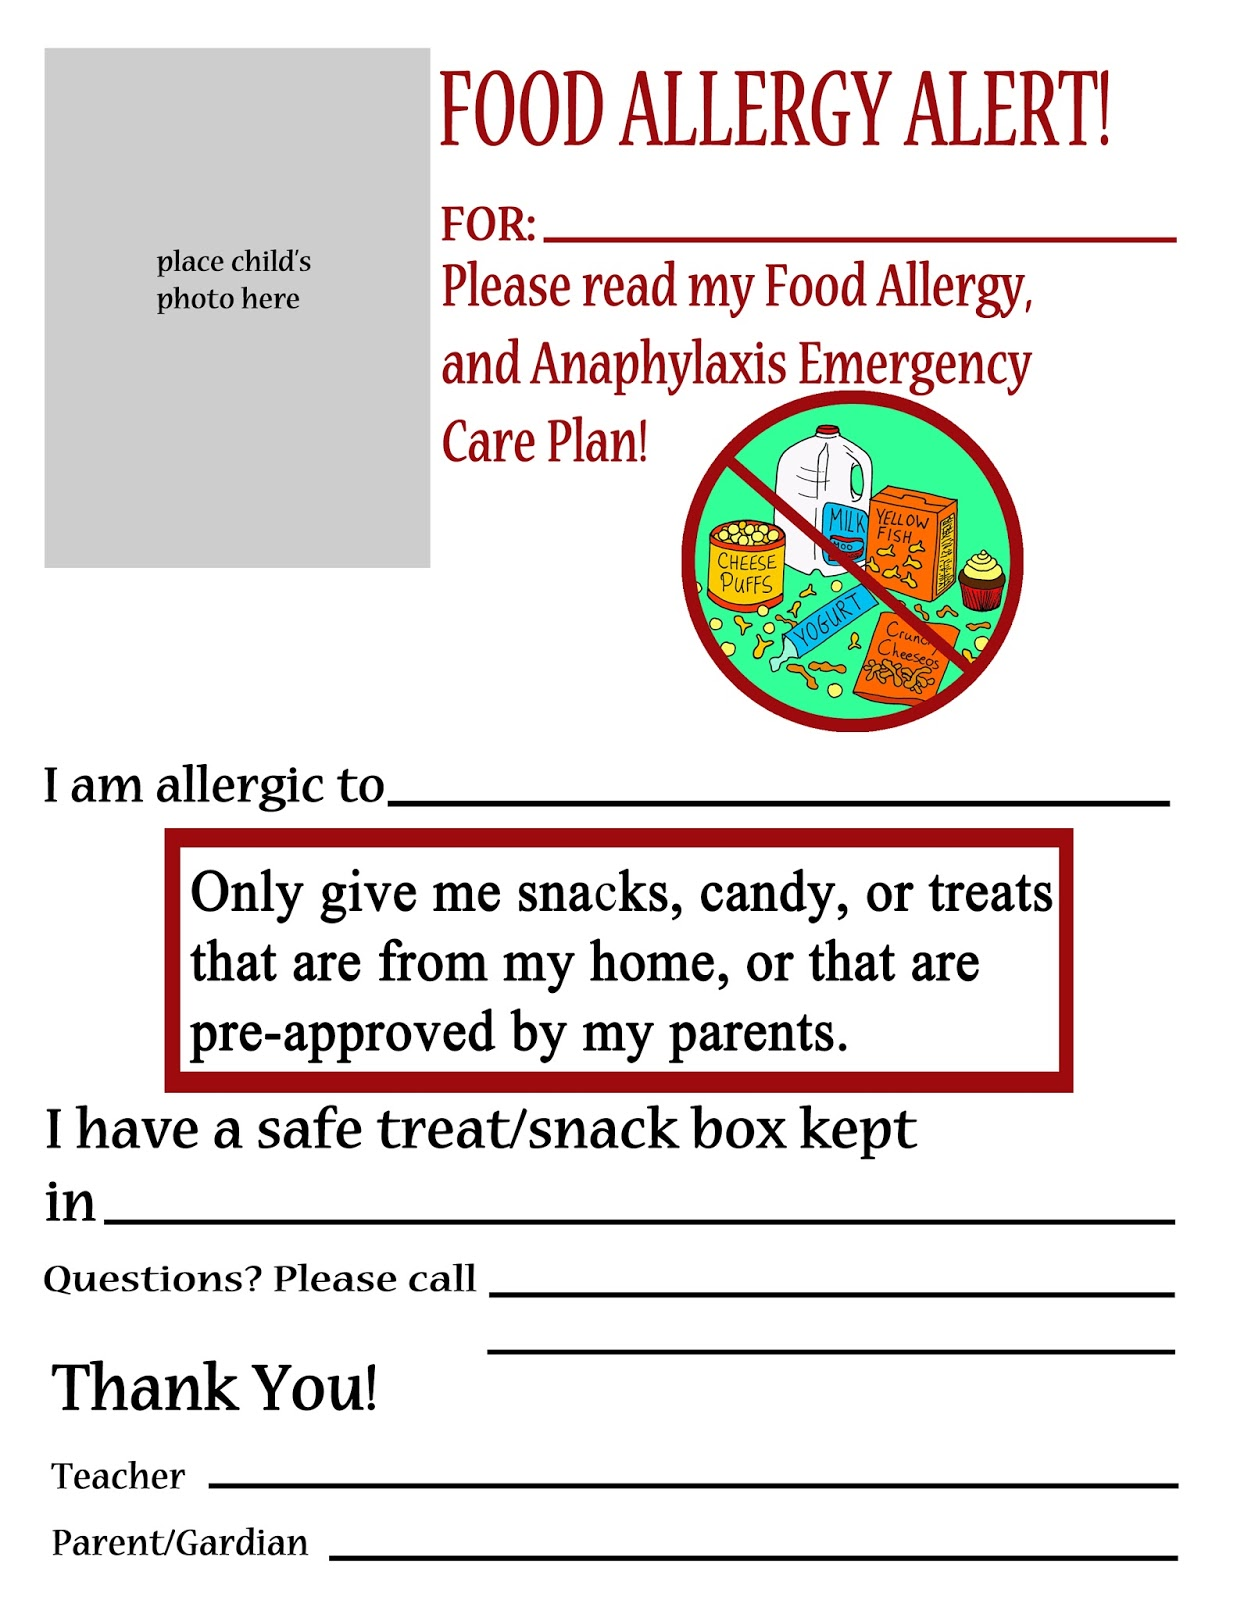 Thriving with allergies food allergy alert daycareschool handouts thriving with allergies food allergy alert daycareschool handouts and posters altavistaventures Image collections